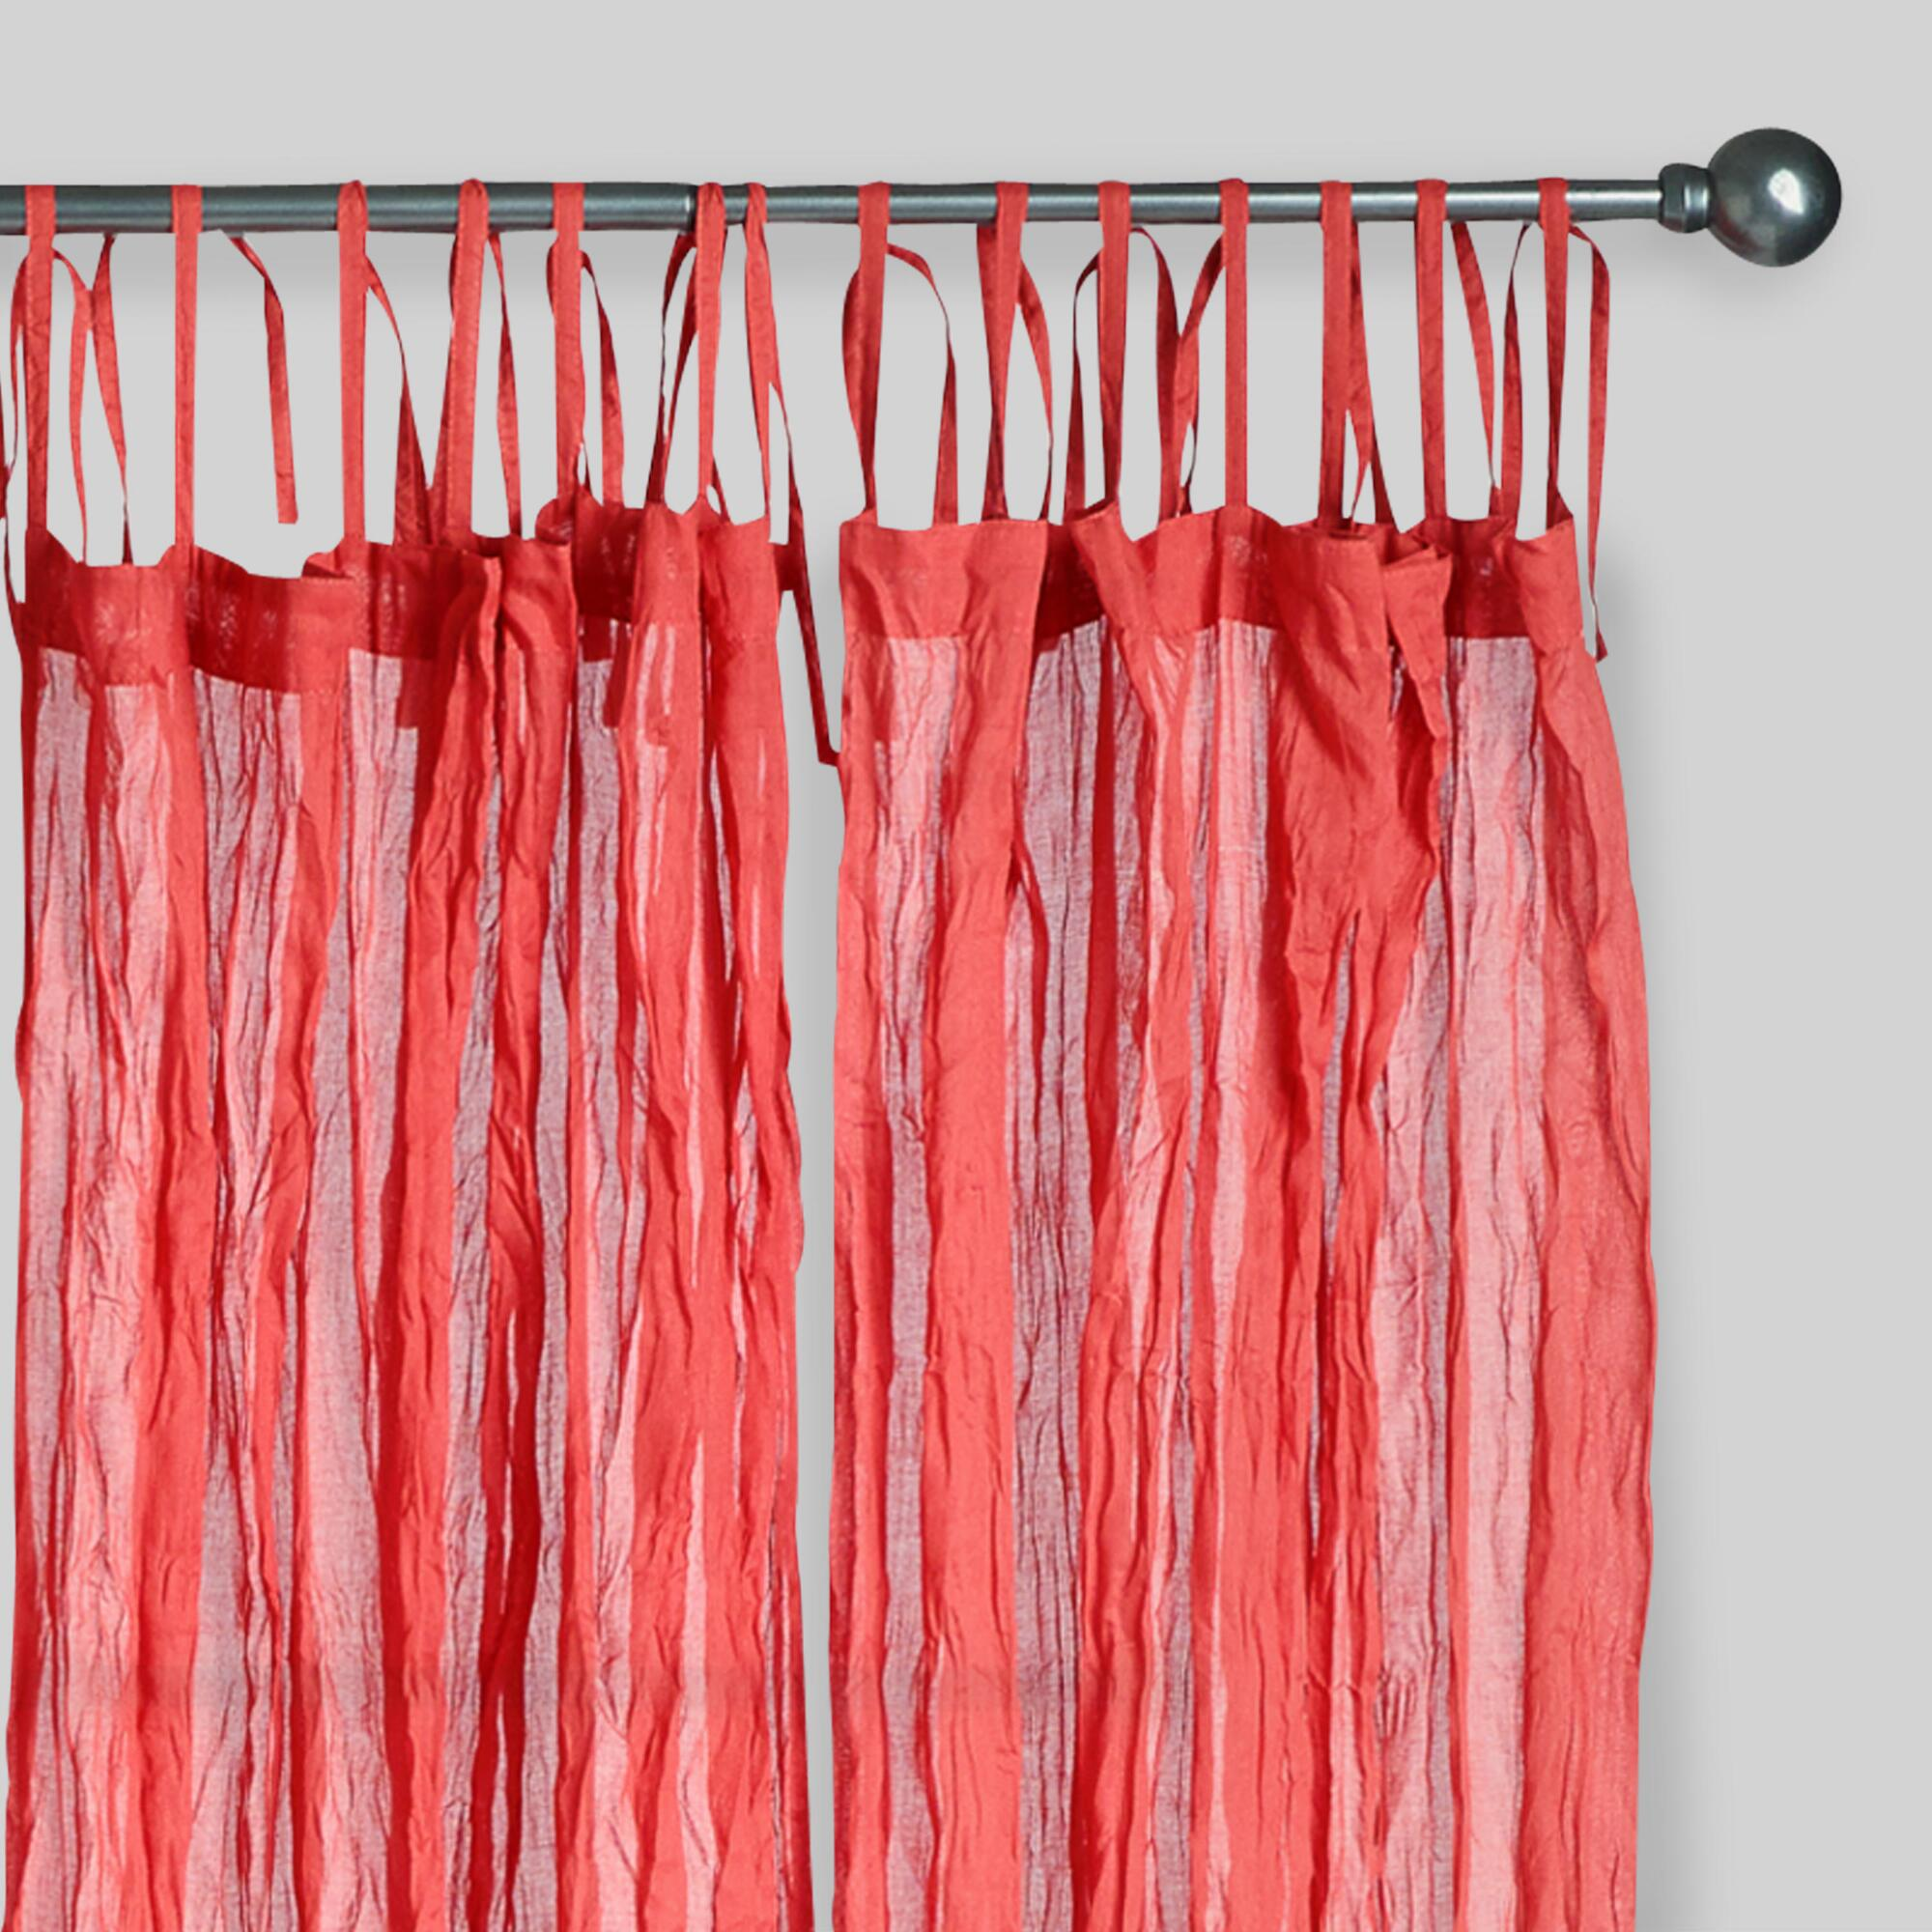 Red crinkle voile cotton curtains set of 2 world market - Images of curtains ...